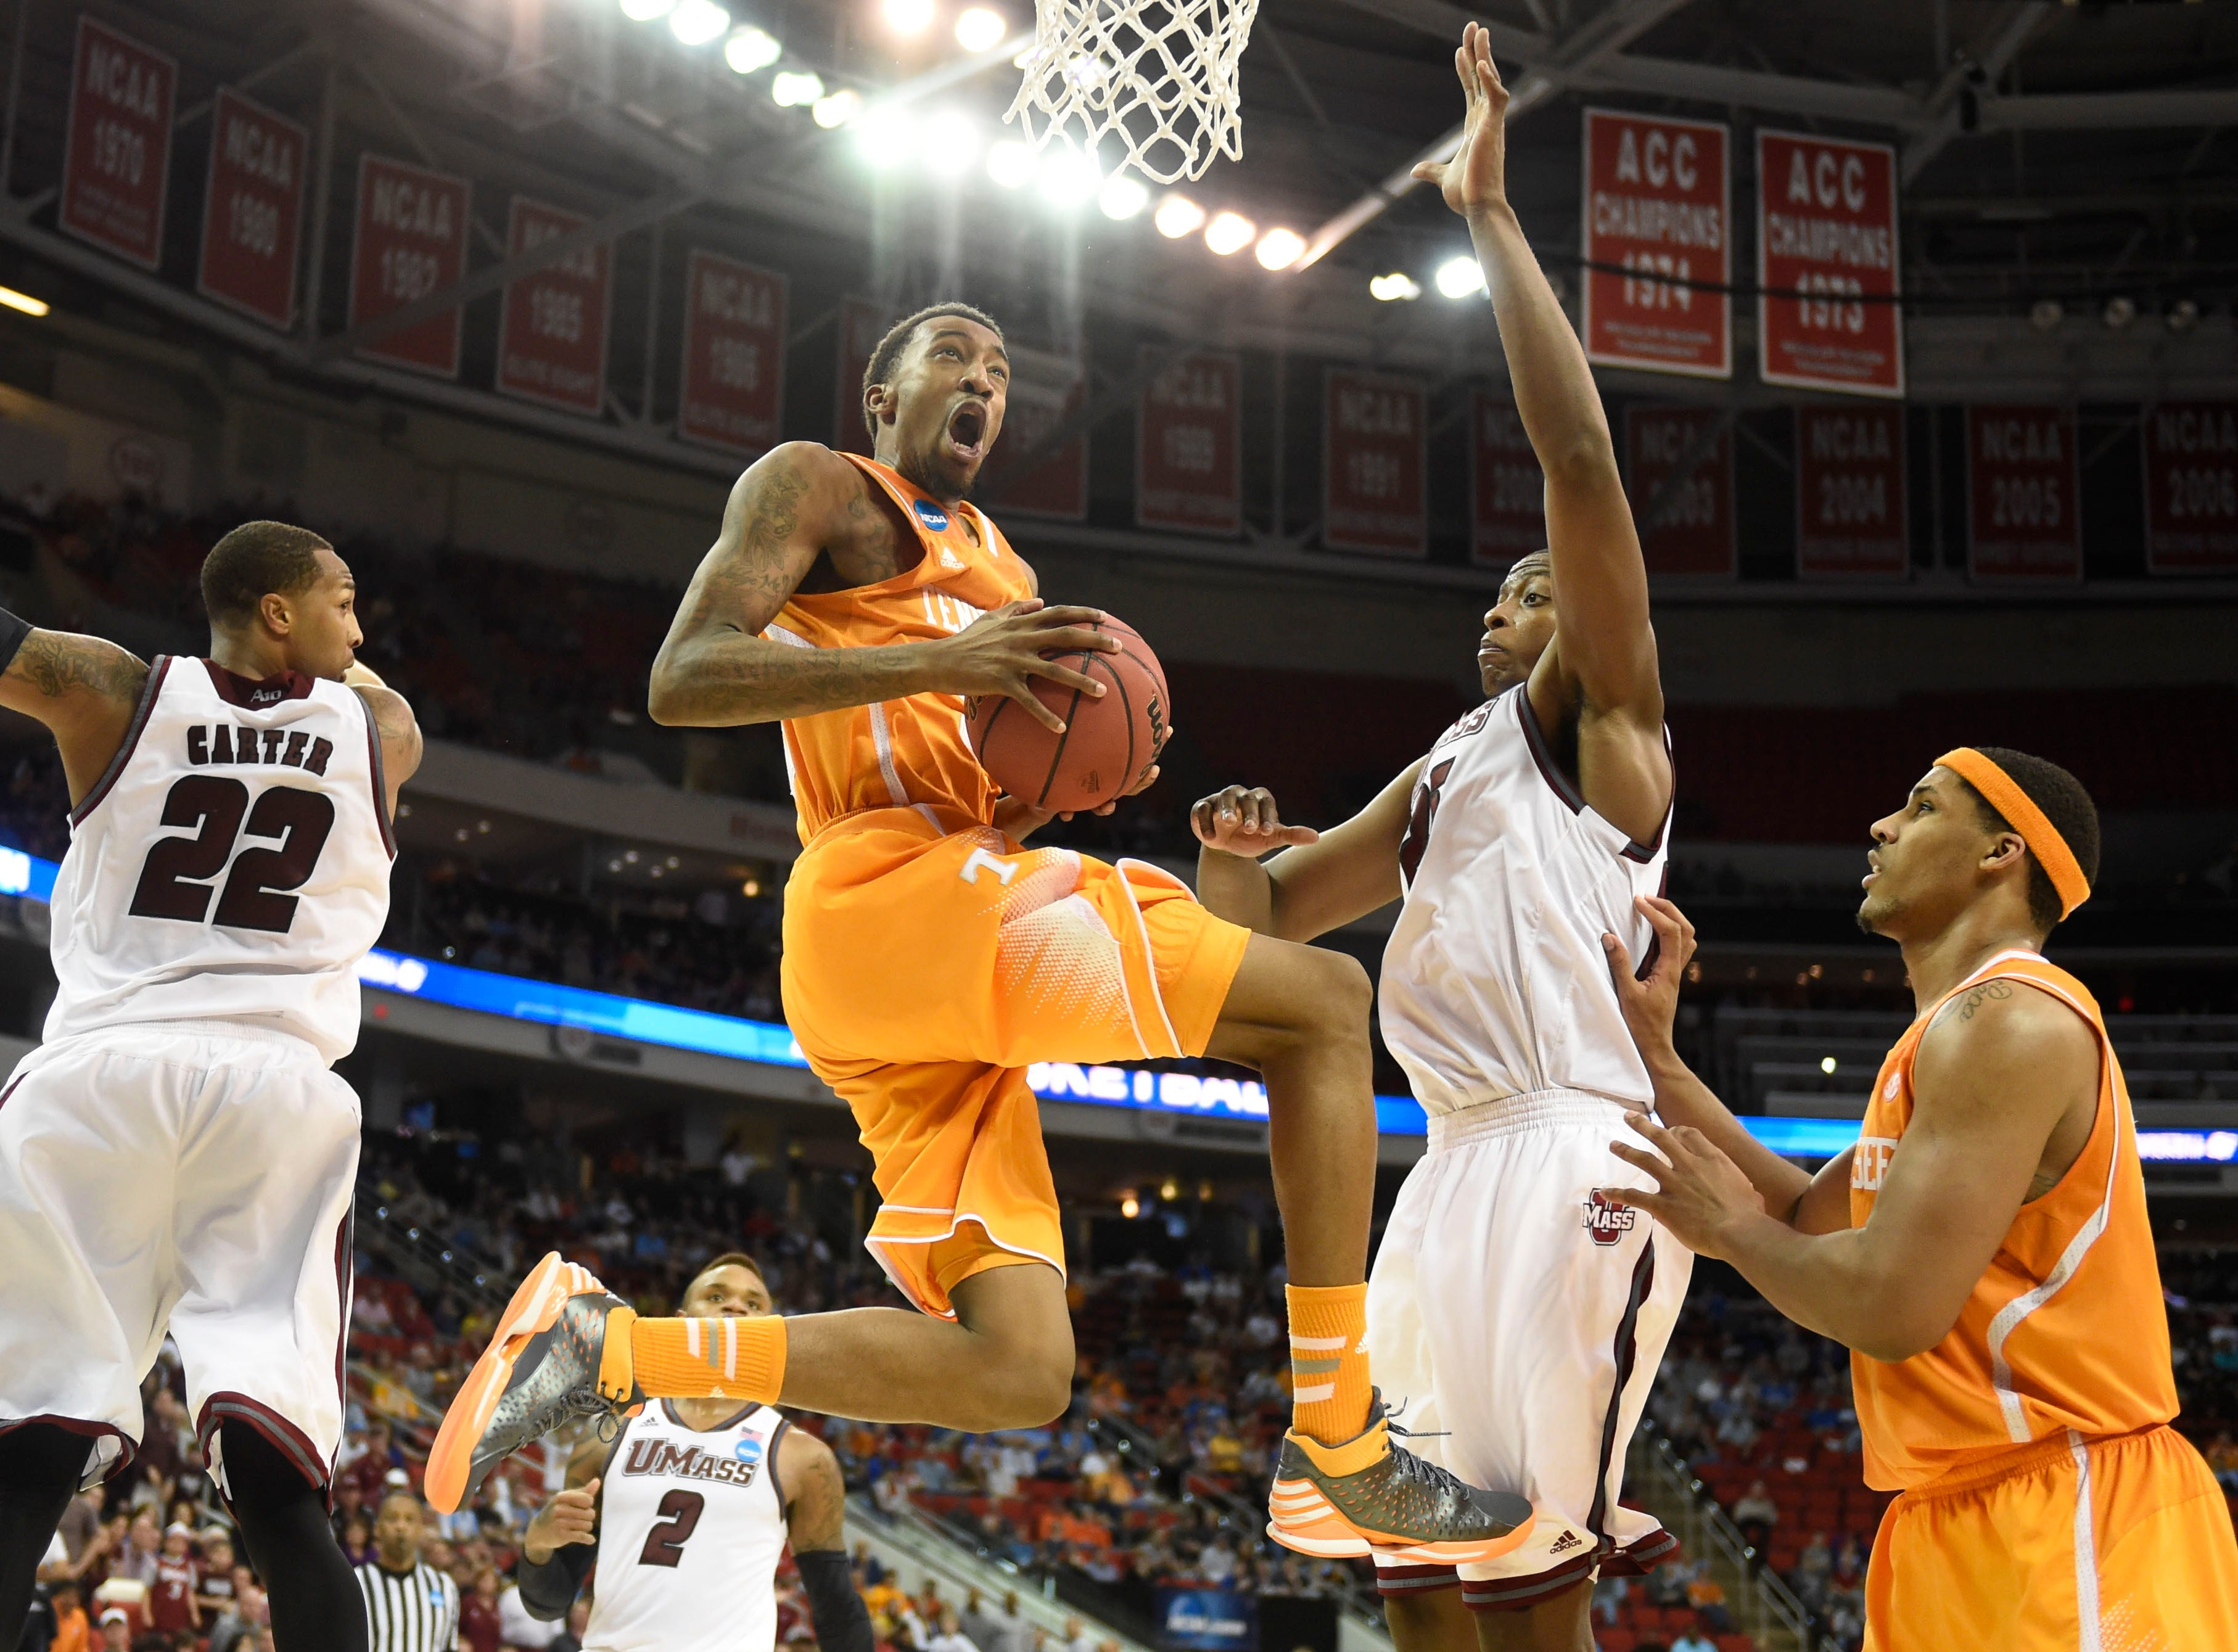 Tennessee guard Jordan McRae (52), center, gets to the hoop in between Massachusetts forward Sampson Carter (22) and Massachusetts center Cady Lalanne (25), while Tennessee forward Jarnell Stokes, right, looks on during the second half of an NCAA tournament game at the PNC Arena in Raleigh, N.C. on Friday, March 21, 2014. Tennessee won 86-67.